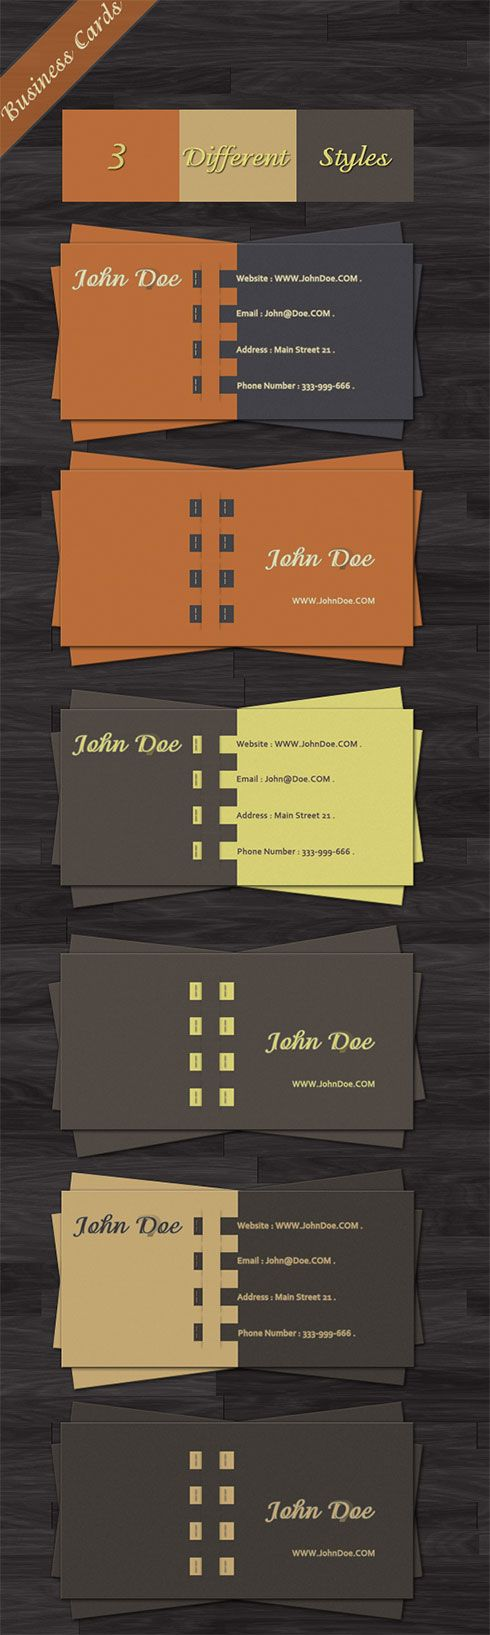 Best 25 tarjetas de presentacion elegantes ideas on pinterest business cards are no longer used just to provide basic information about yourself and your company magicingreecefo Image collections